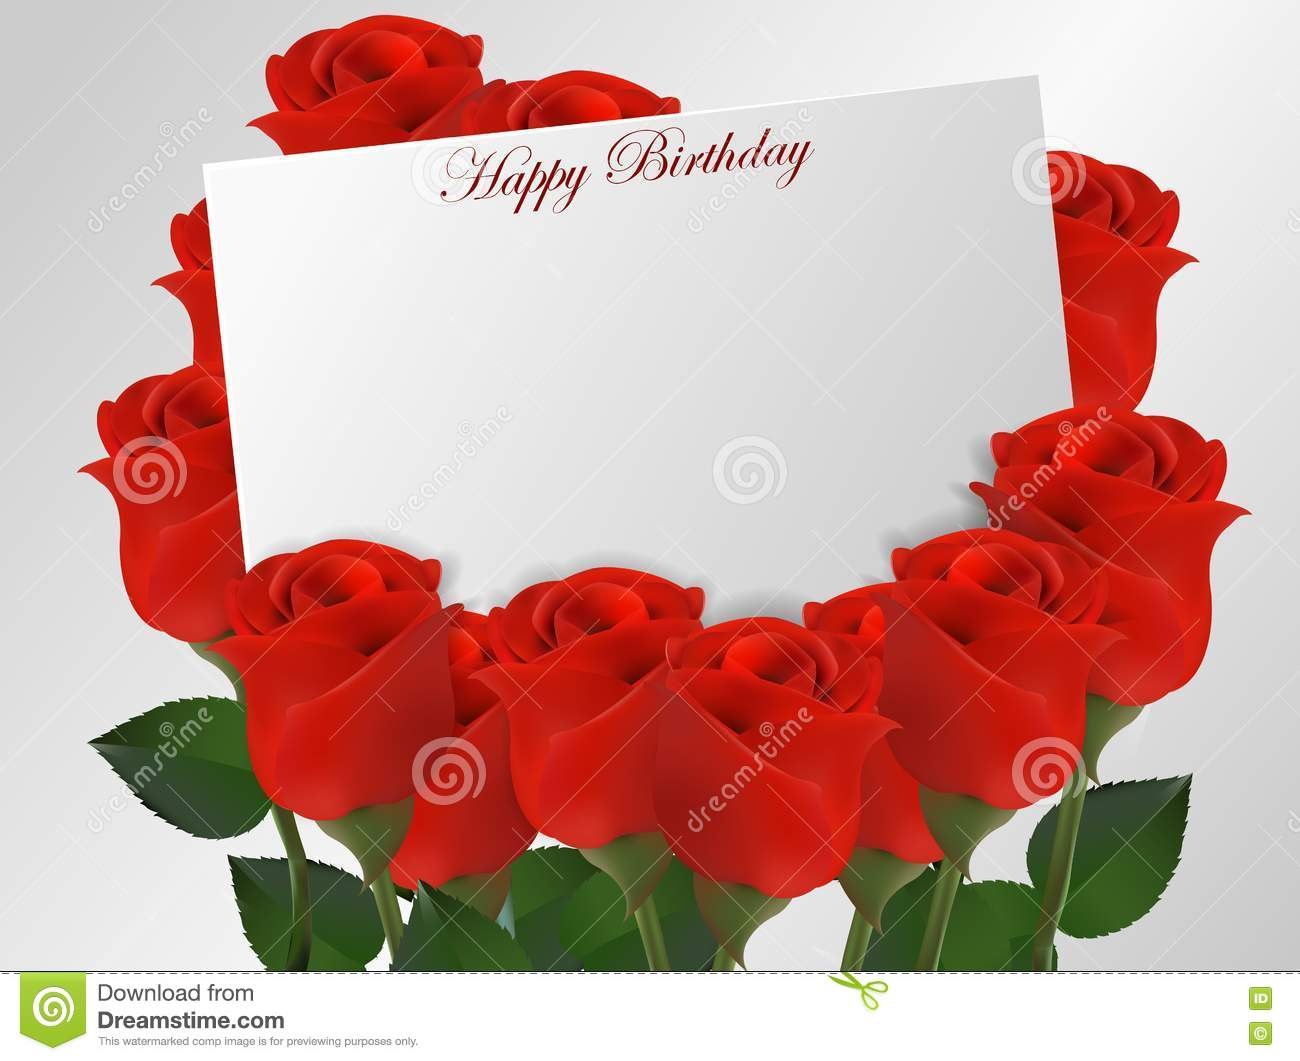 Happy Birthday Card With Roses Flower Vector Image 72898589 – Birthday Greetings with Roses